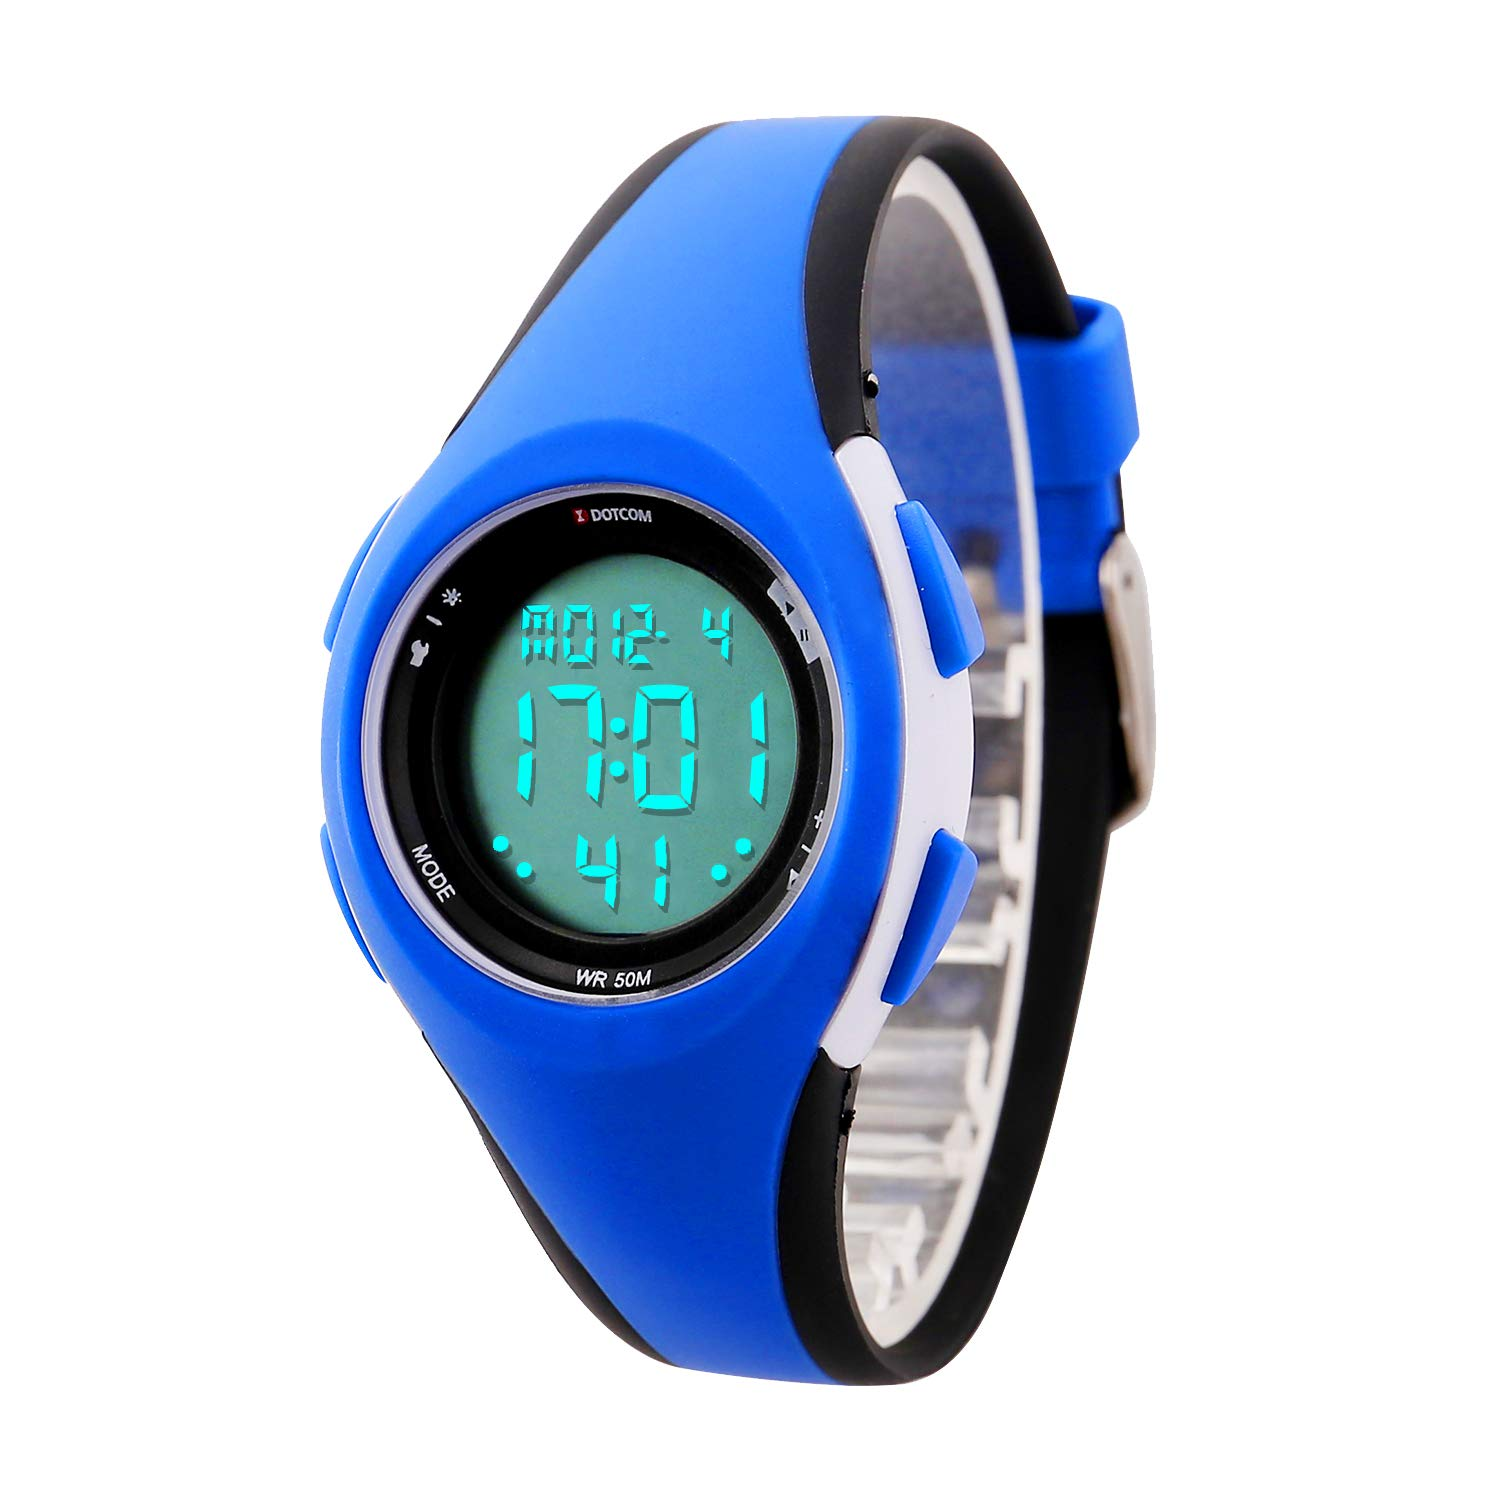 7ceac4acf Amazon.com: Kids Digital Sport Watch Outdoor Waterproof LED Watch with Alarm  for Child Boy Girls Gift Kids Watch: Watches